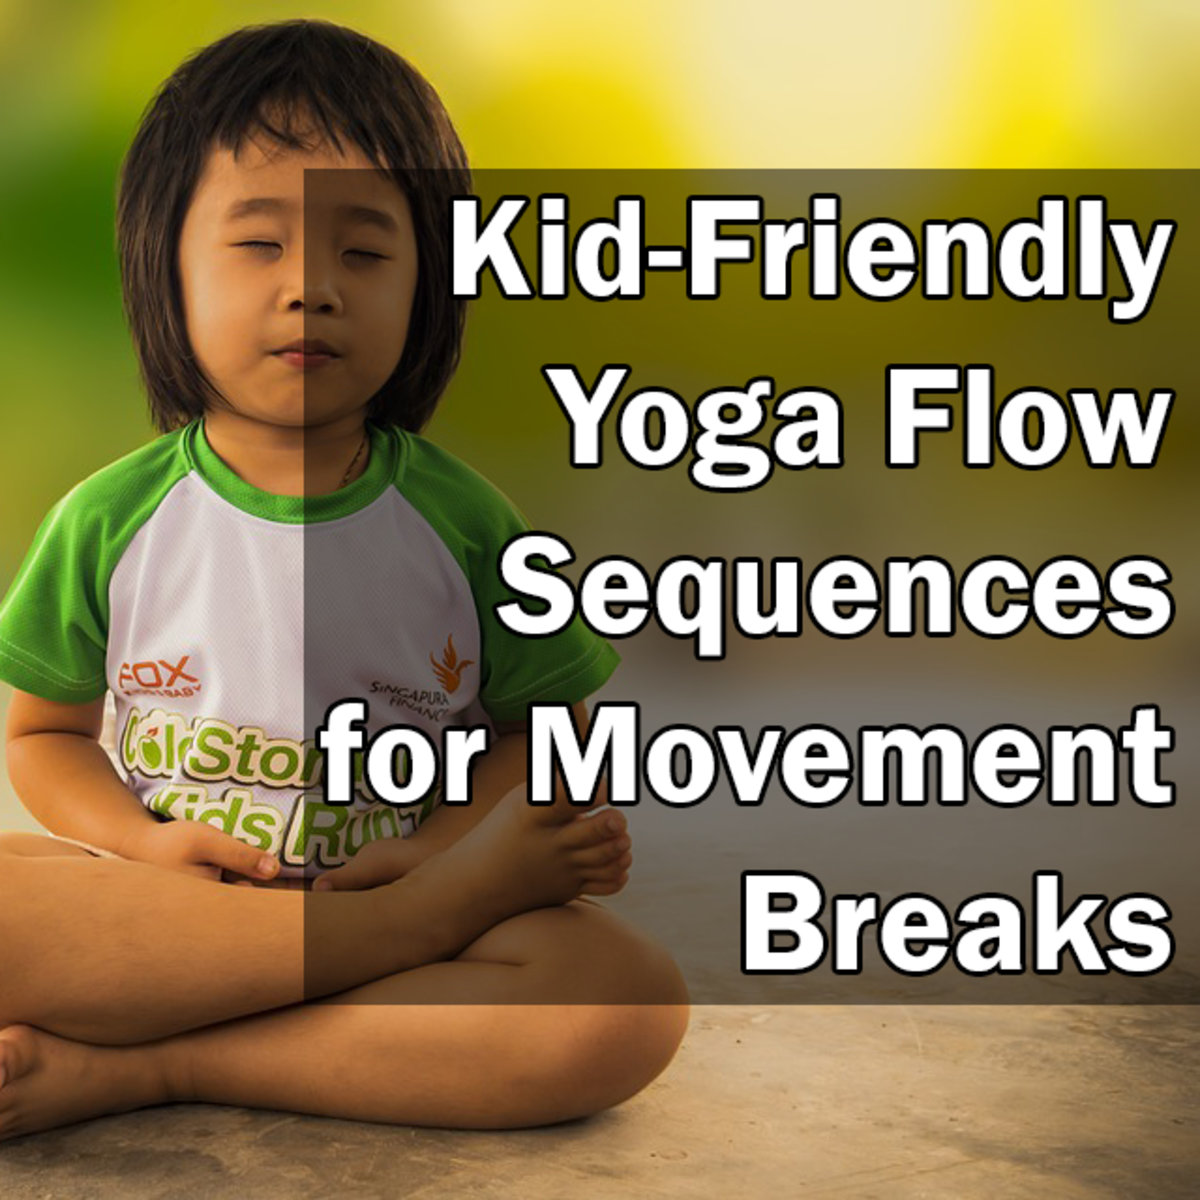 Kid-Friendly Yoga Flow Sequences for Movement Breaks and Early Childhood Fitness